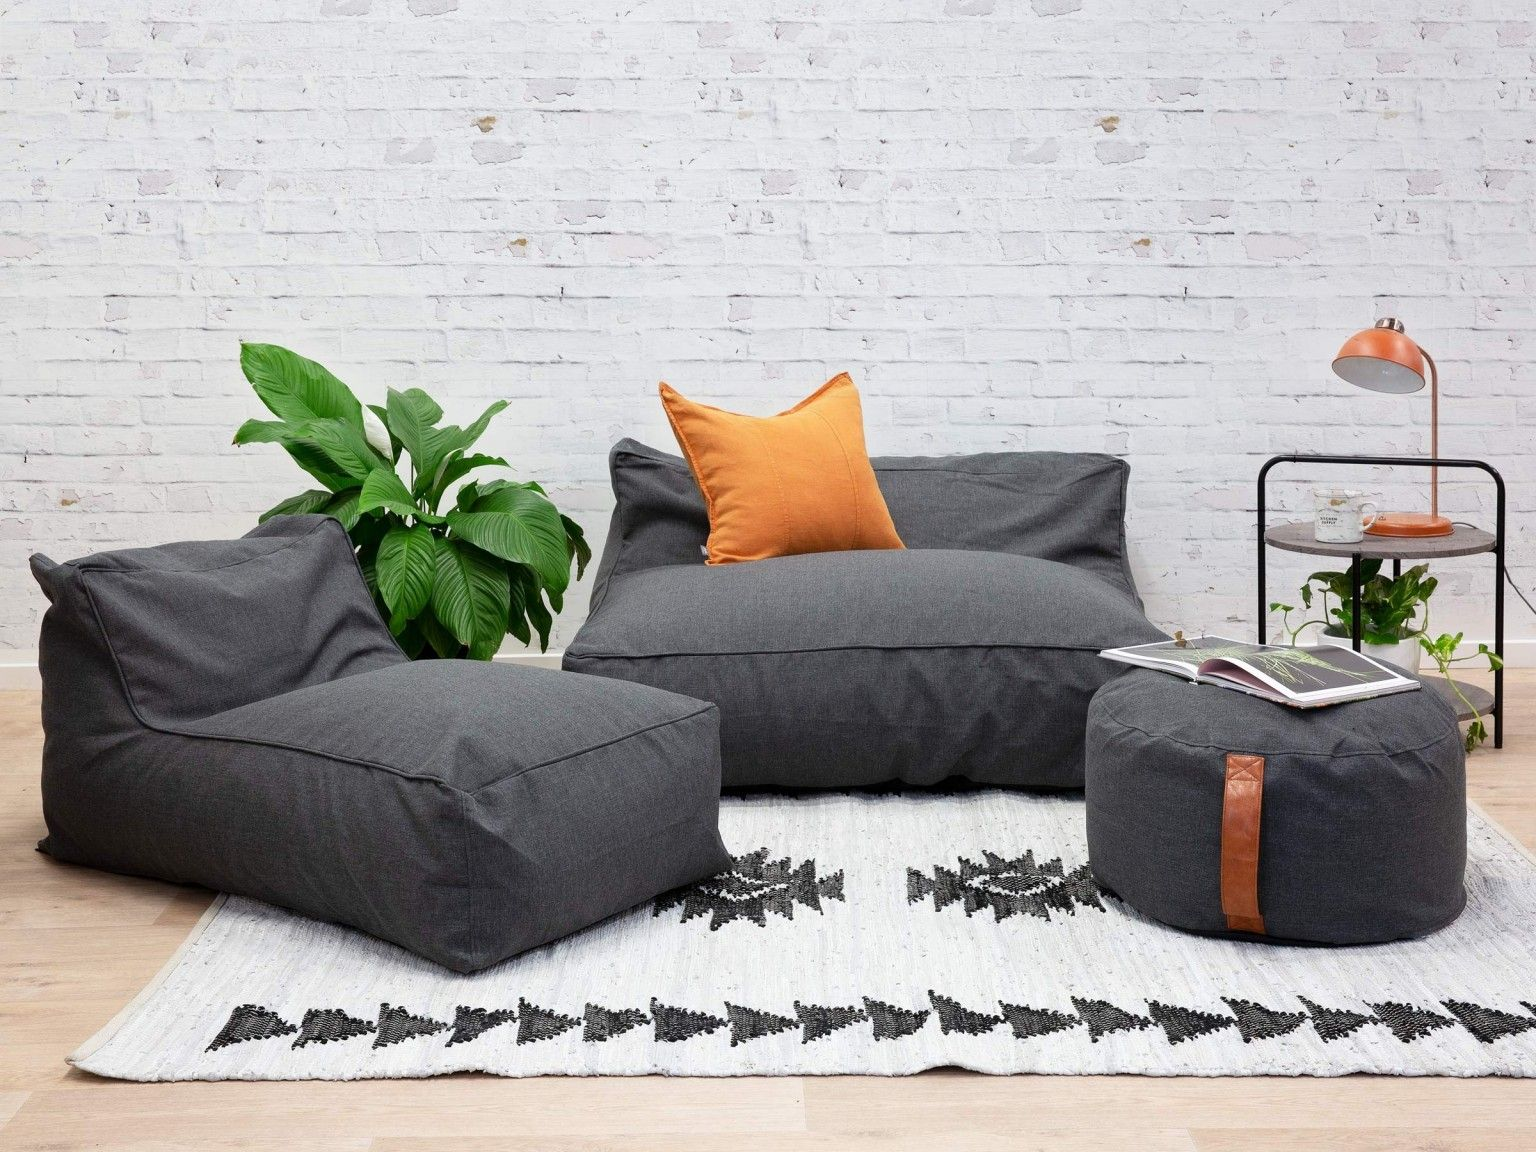 Tremendous Get Rid Of The Coffee Table And Throw Some Big Bean Bag On Unemploymentrelief Wooden Chair Designs For Living Room Unemploymentrelieforg